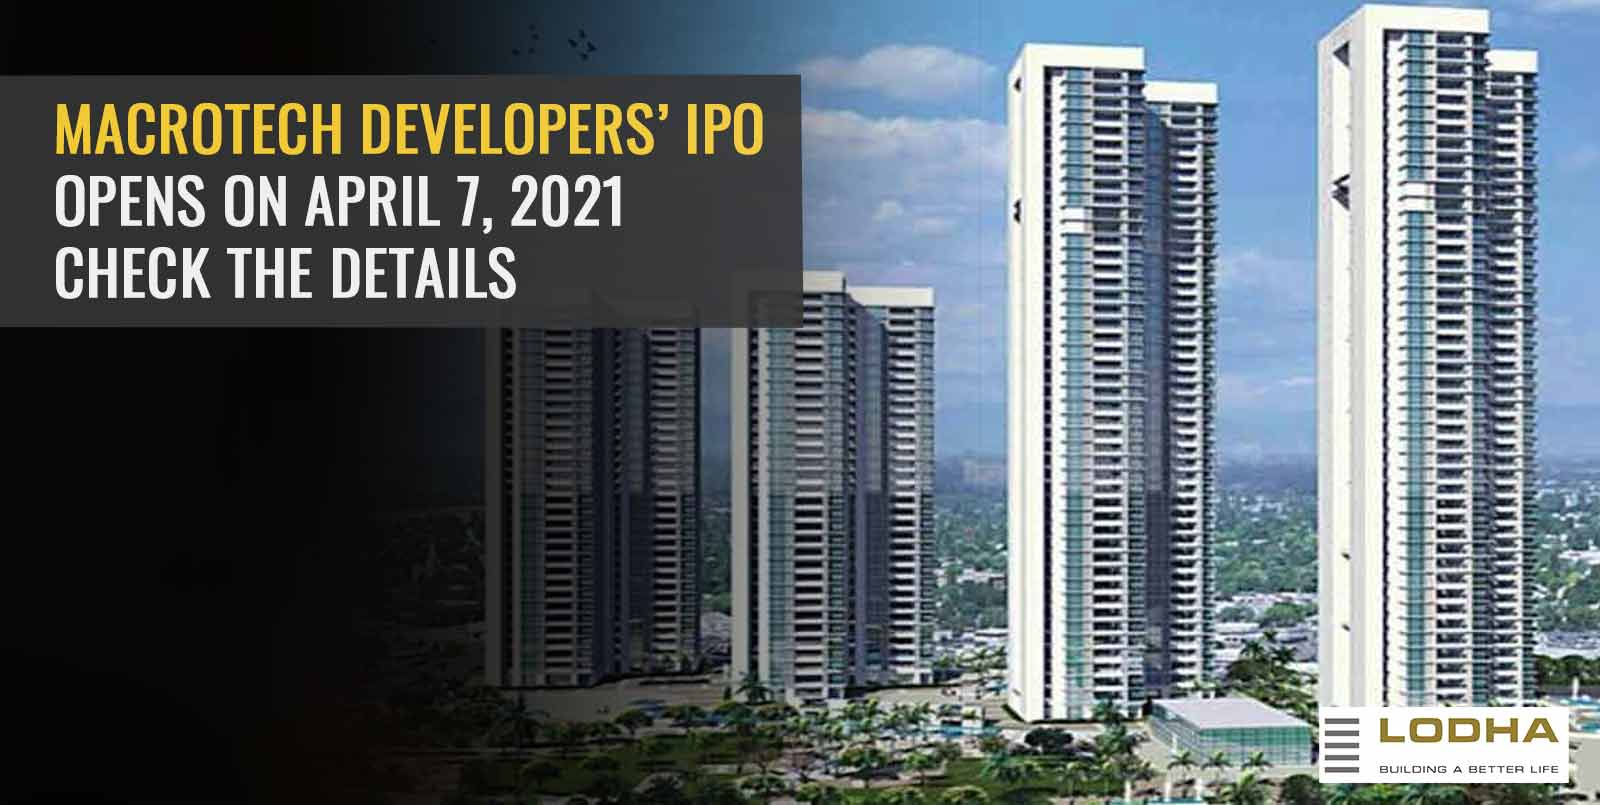 Macrotech Developers' IPO Opens On April 7, 2021: Check The Details